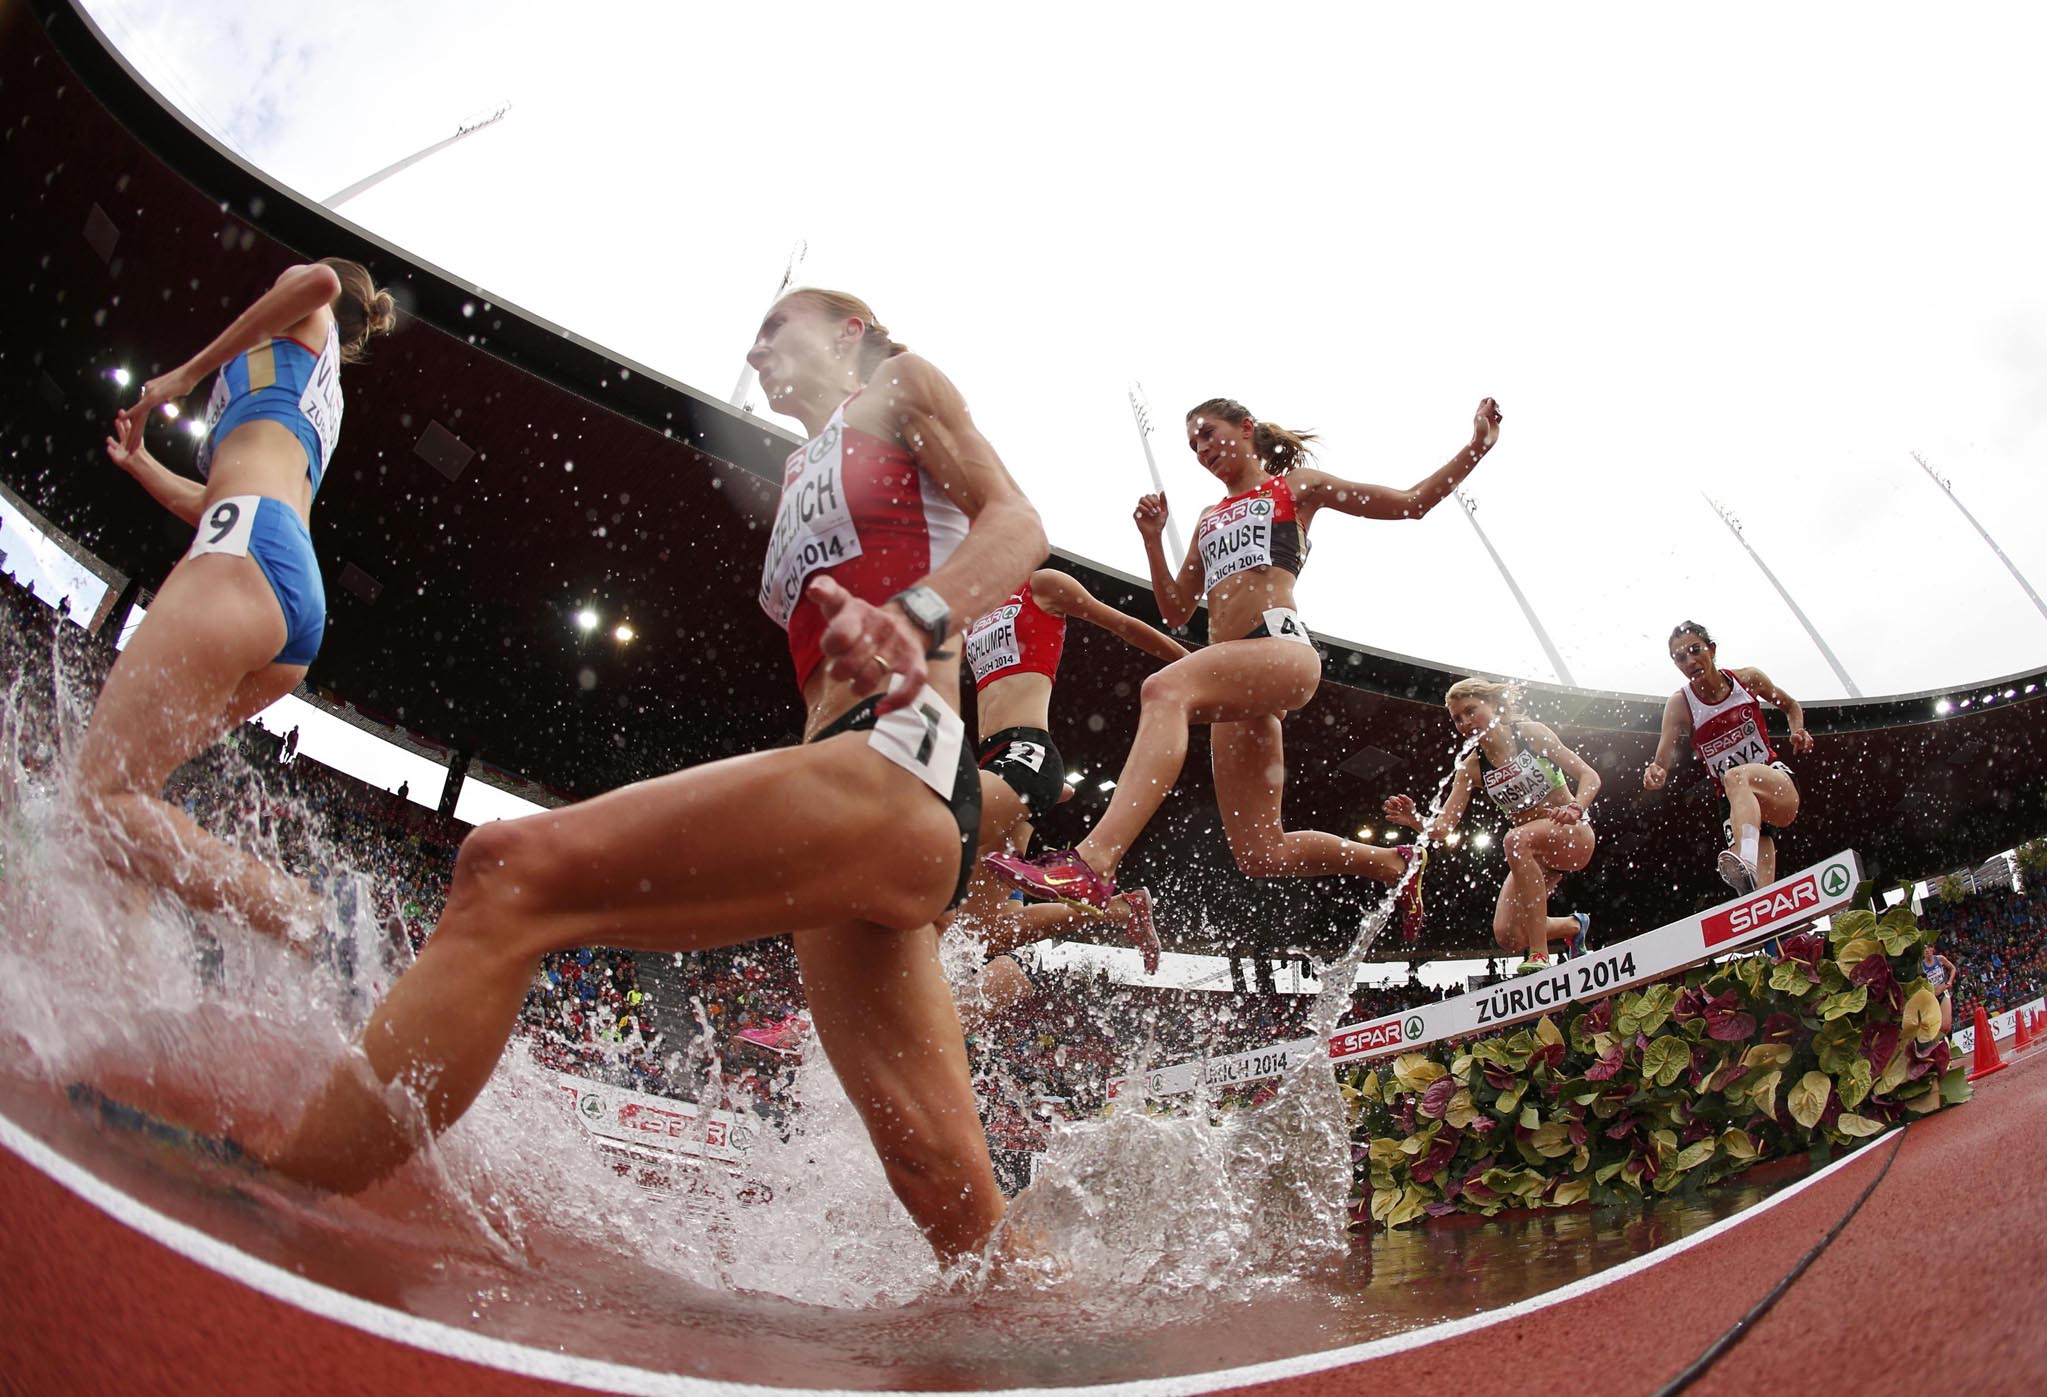 Kudzelich of Belarus Vlasova of Russia and Krause of Germany compete in women's 3000 metres steeplechase heat during European Athletics Championships in Zurich